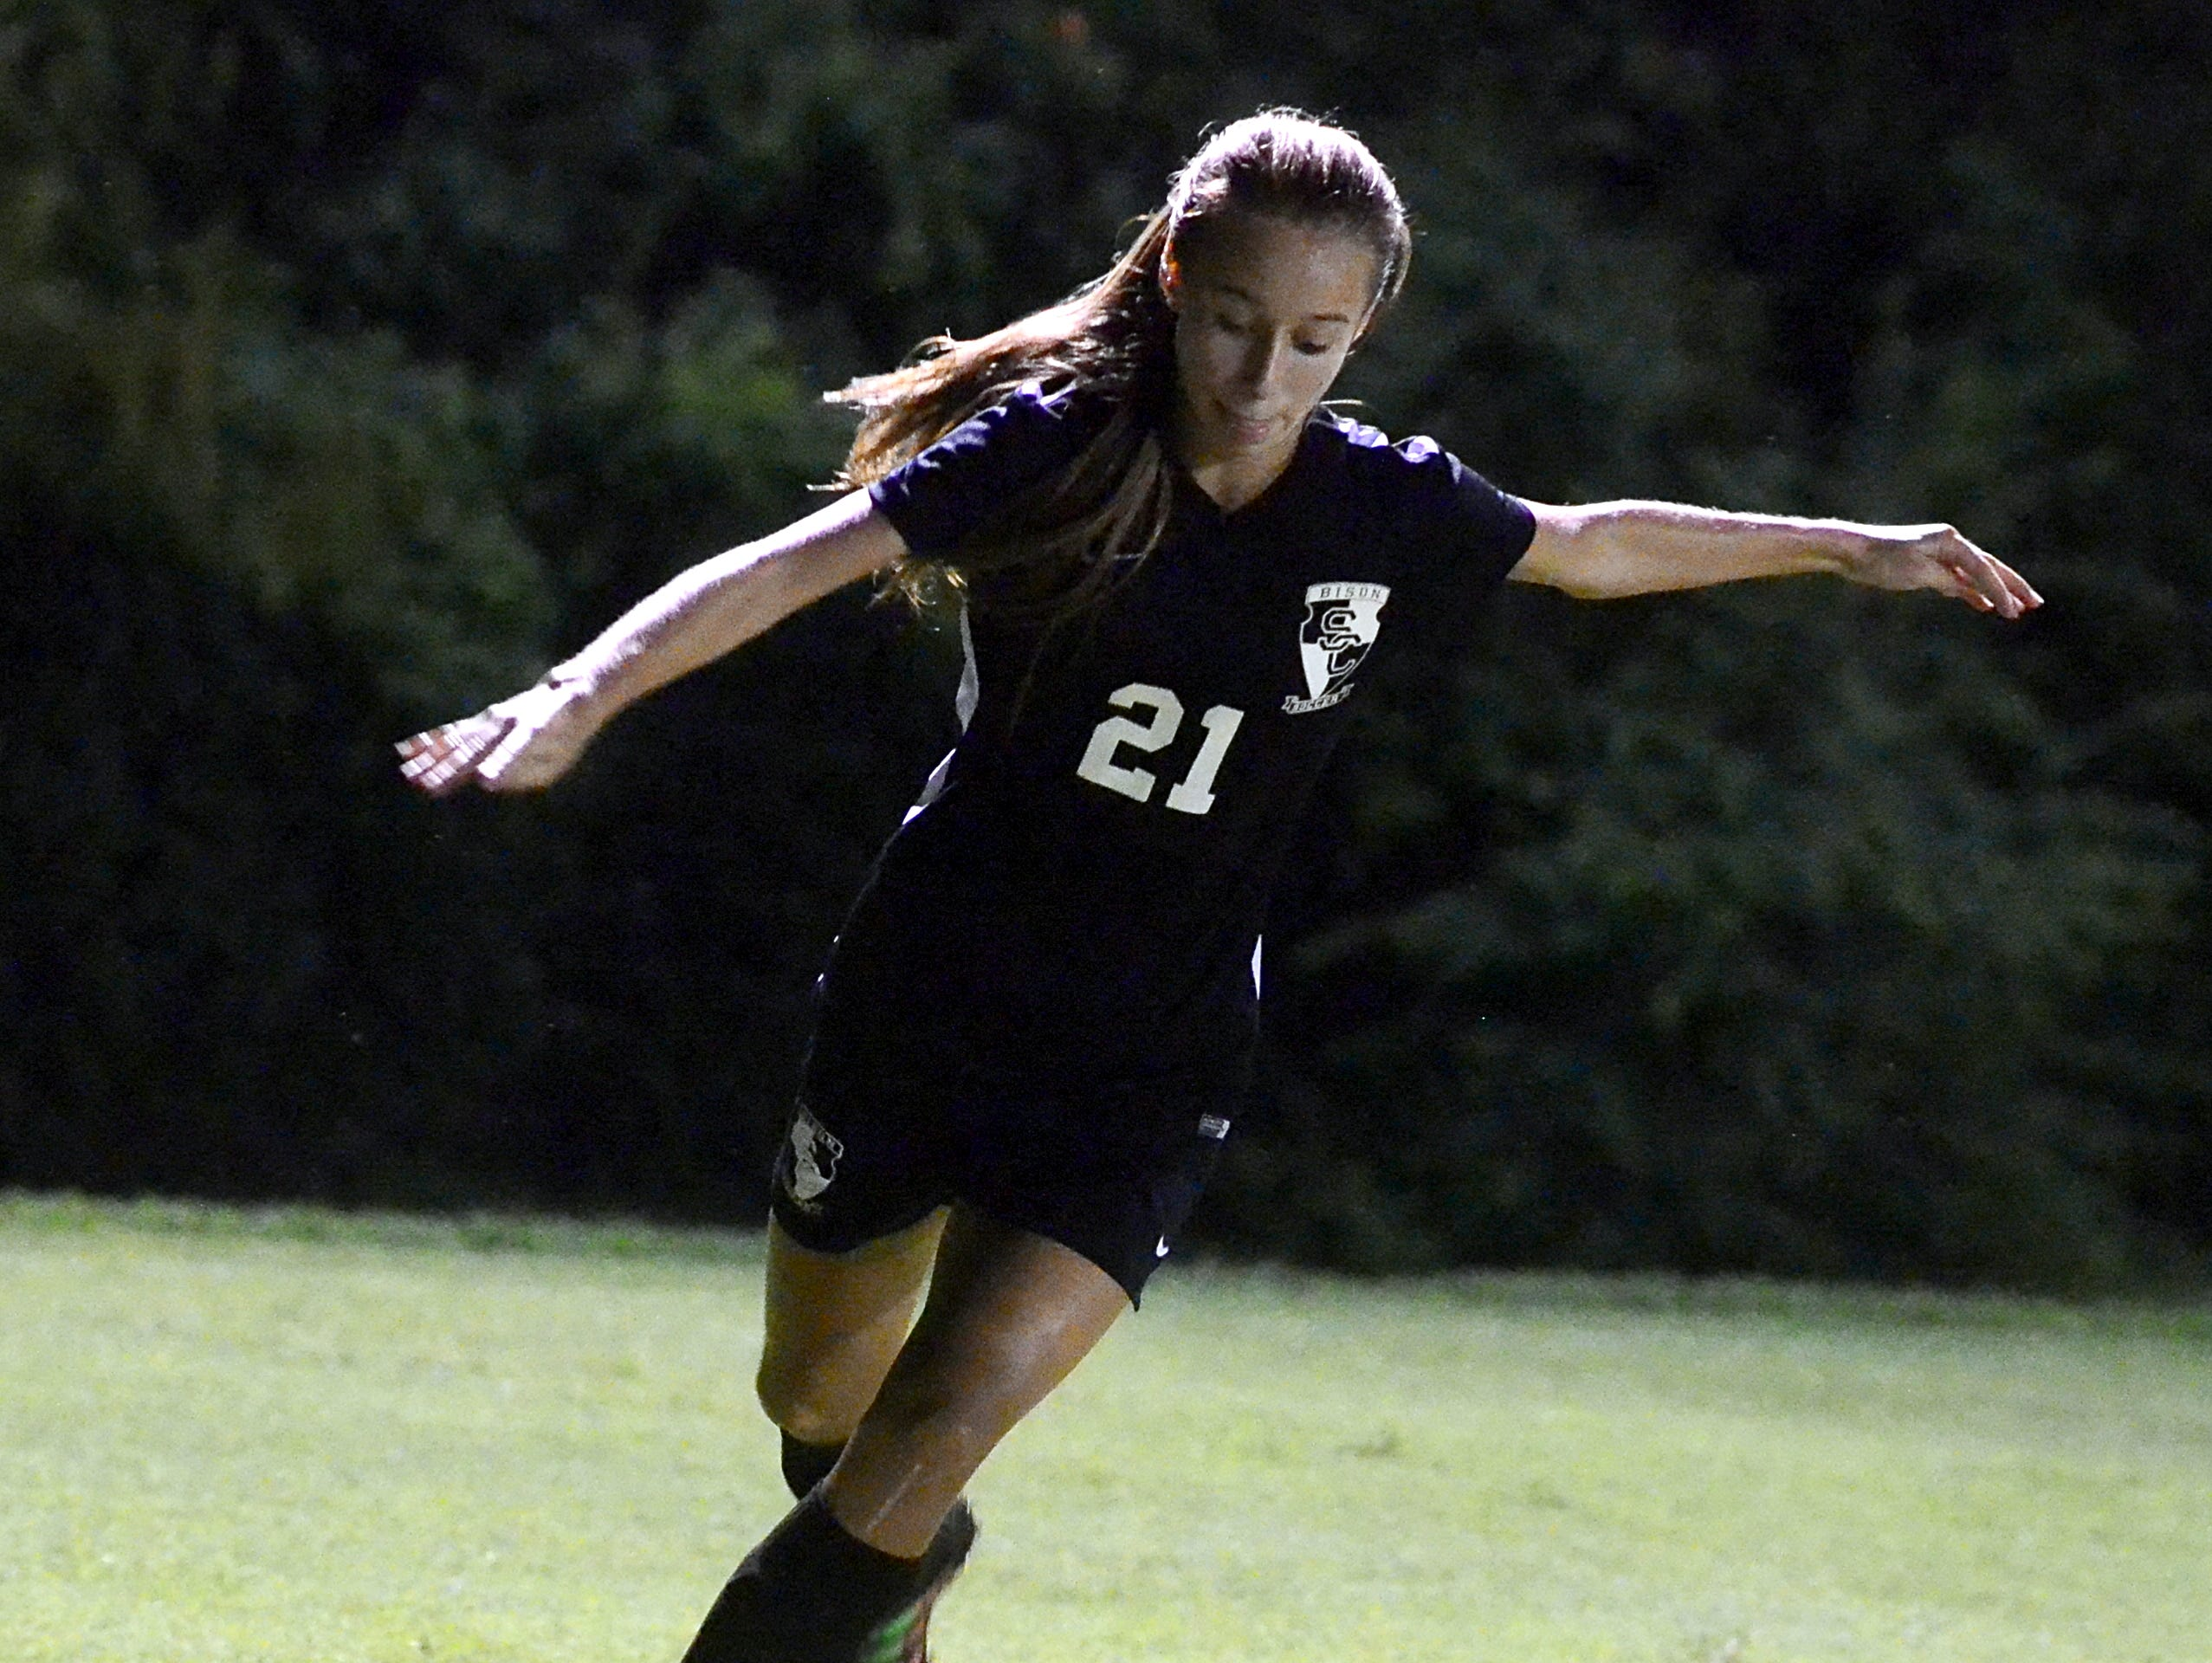 Station Camp High sophomore Faith Brown sends a cross into the box during second-half action. Brown scored a goal in the Lady Bison's 5-0 victory on Tuesday.